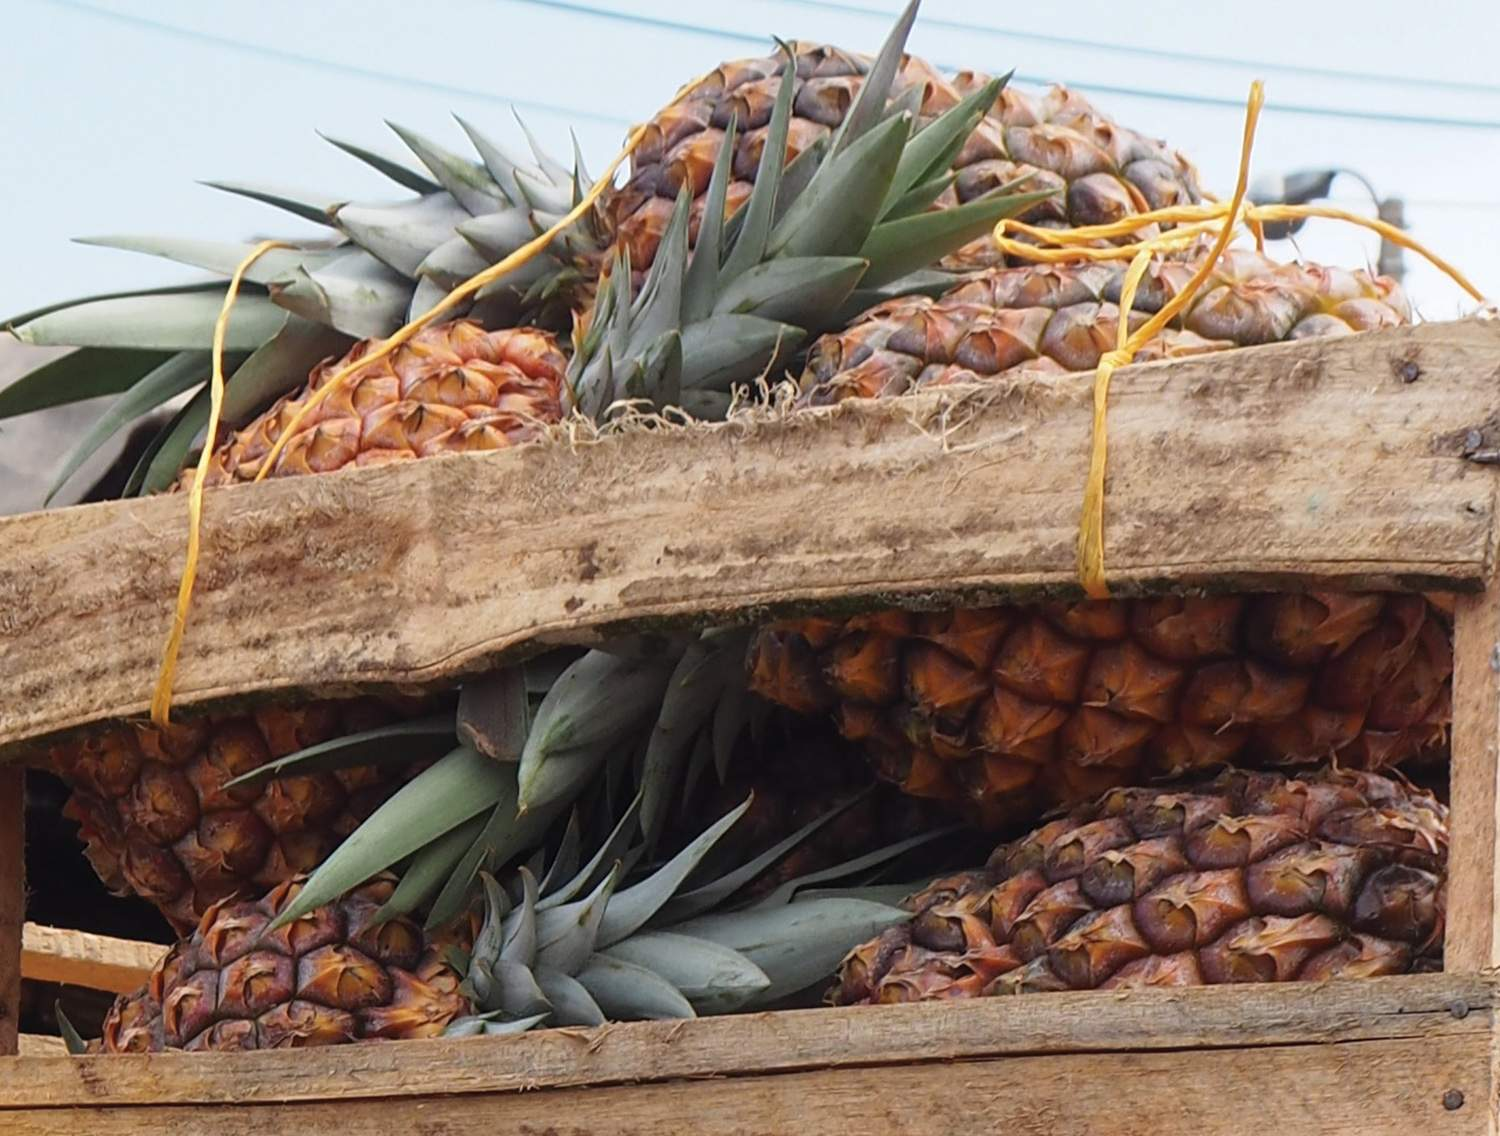 Pineapples in Cartagena